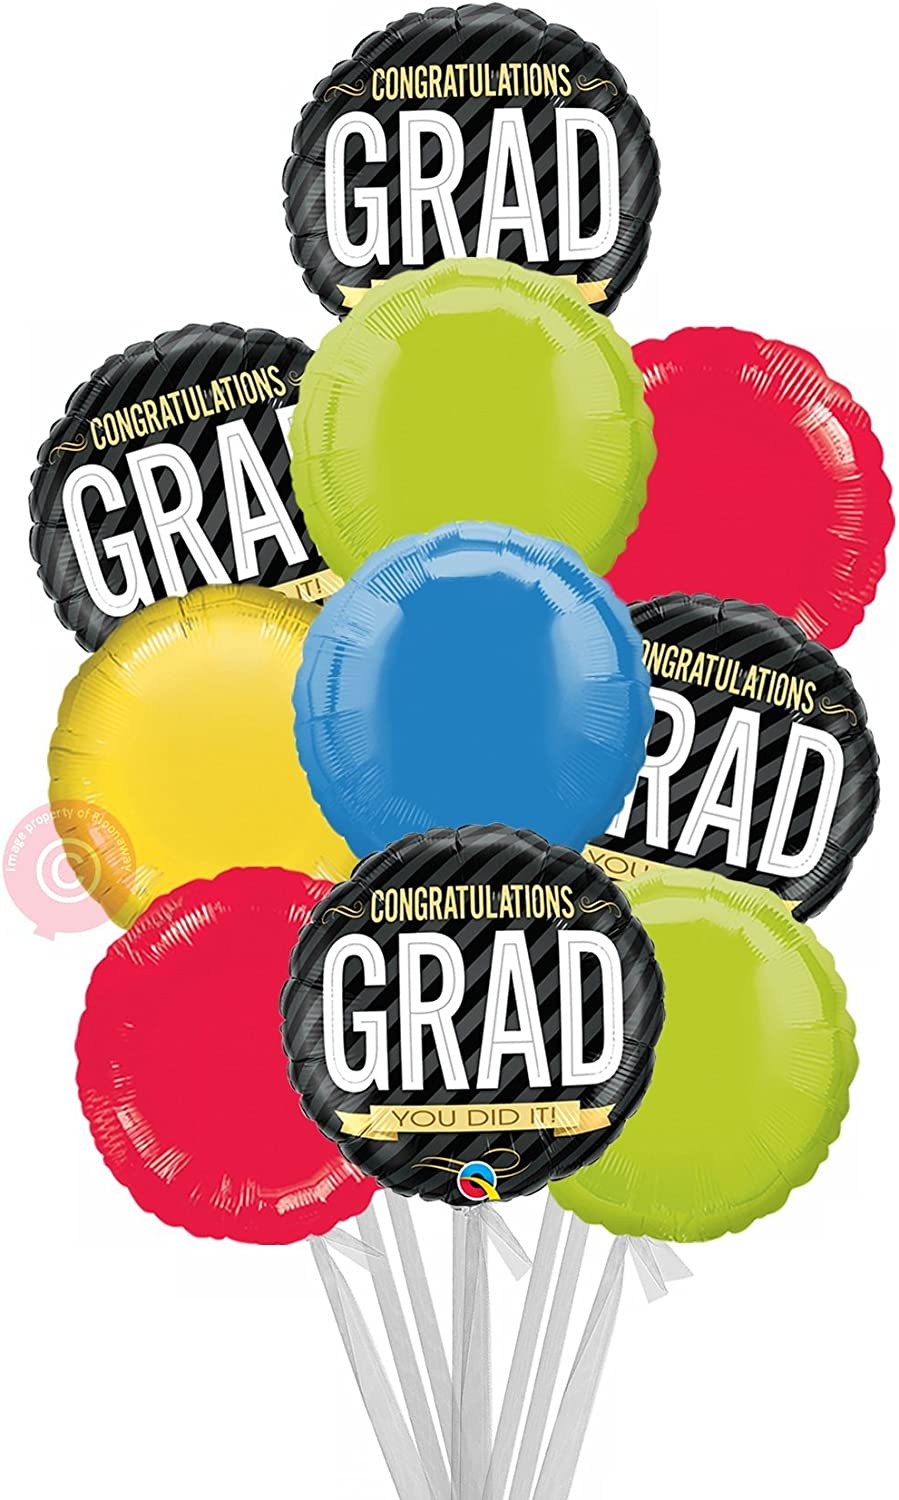 Congratulations Grad Stripes  Inflated Graduation Helium Balloon Delivered in a Box  Biggest Bouquet  10 Balloons  Bloonaway